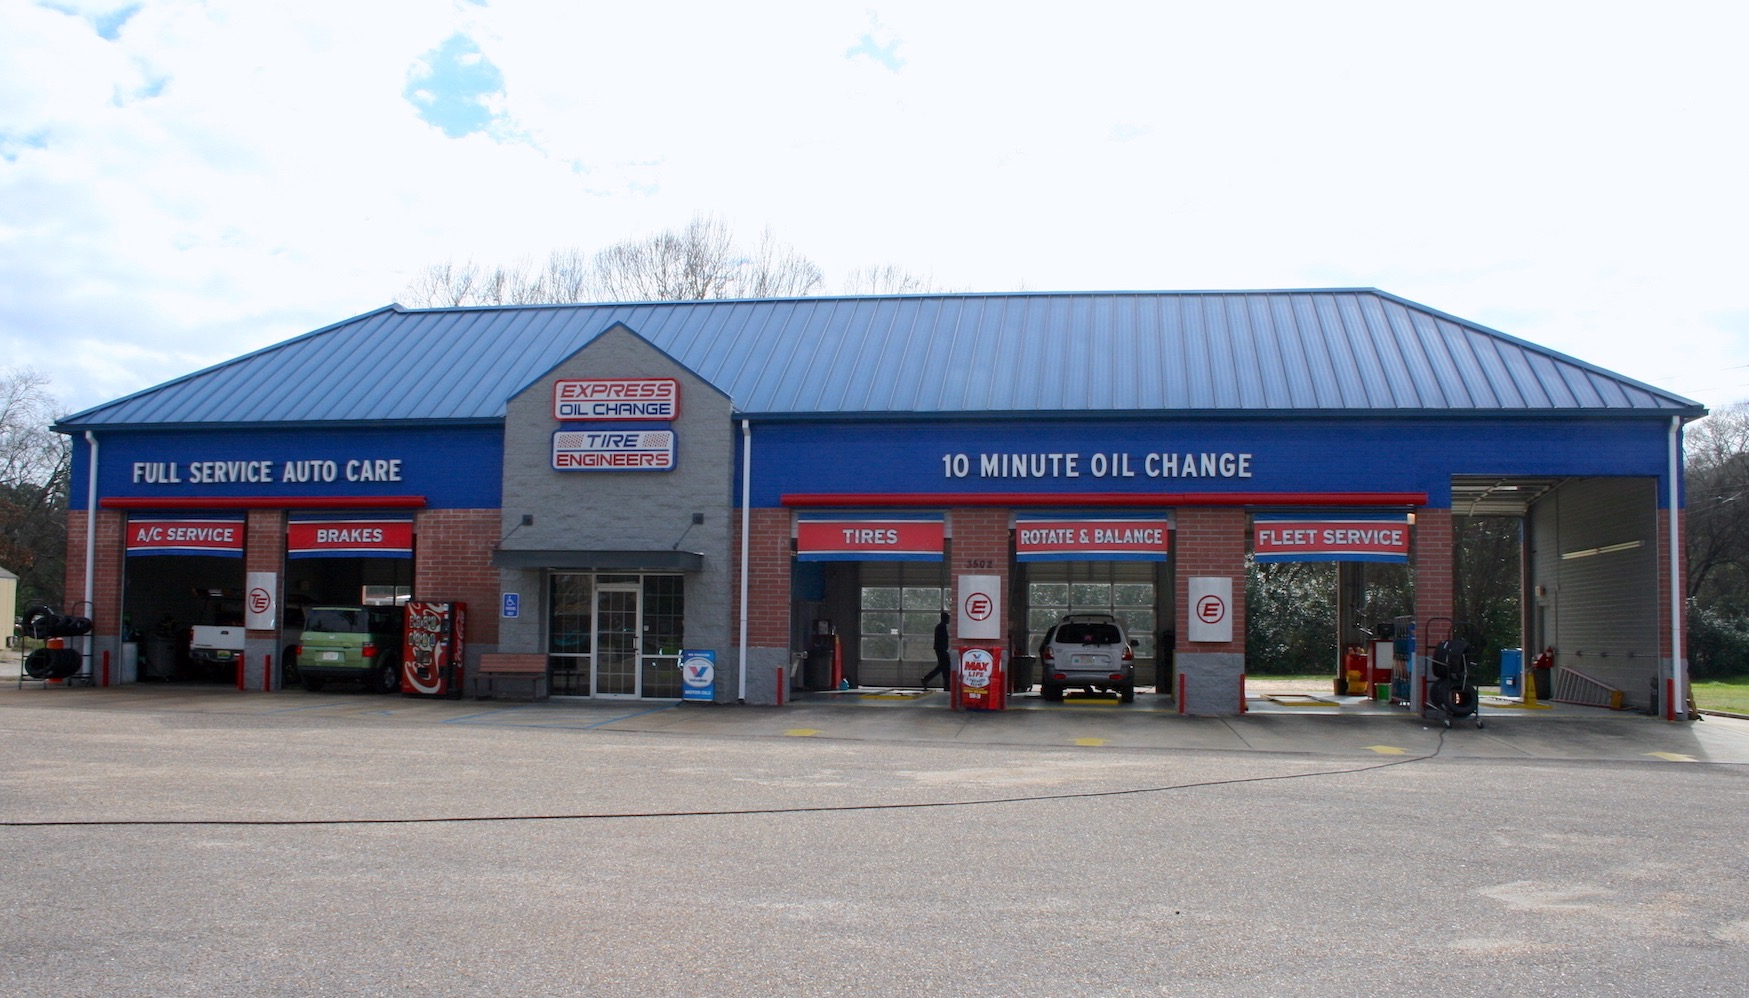 Express Oil Change & Tire Engineers Montgomery, AL - Forest Hills store